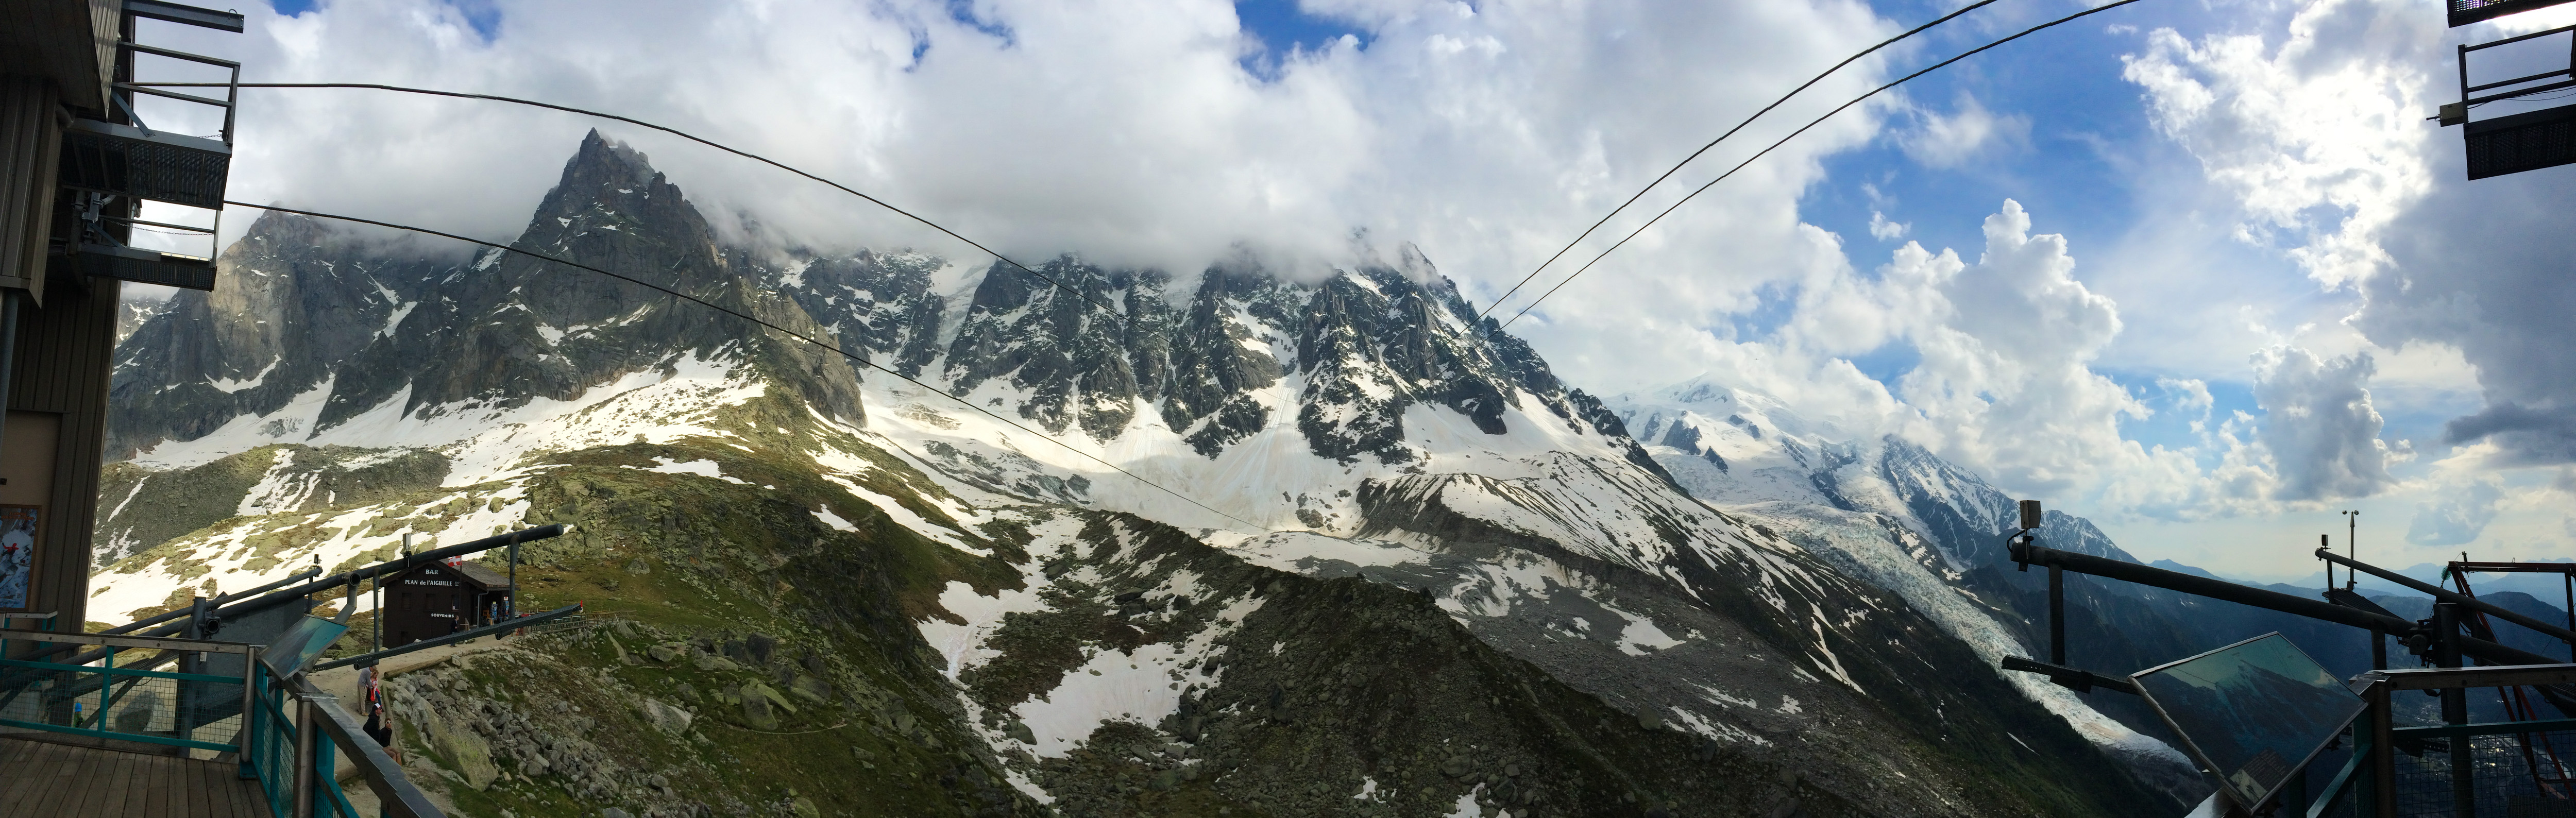 Cable car up to Mont Blanc for my first real alpine climb.